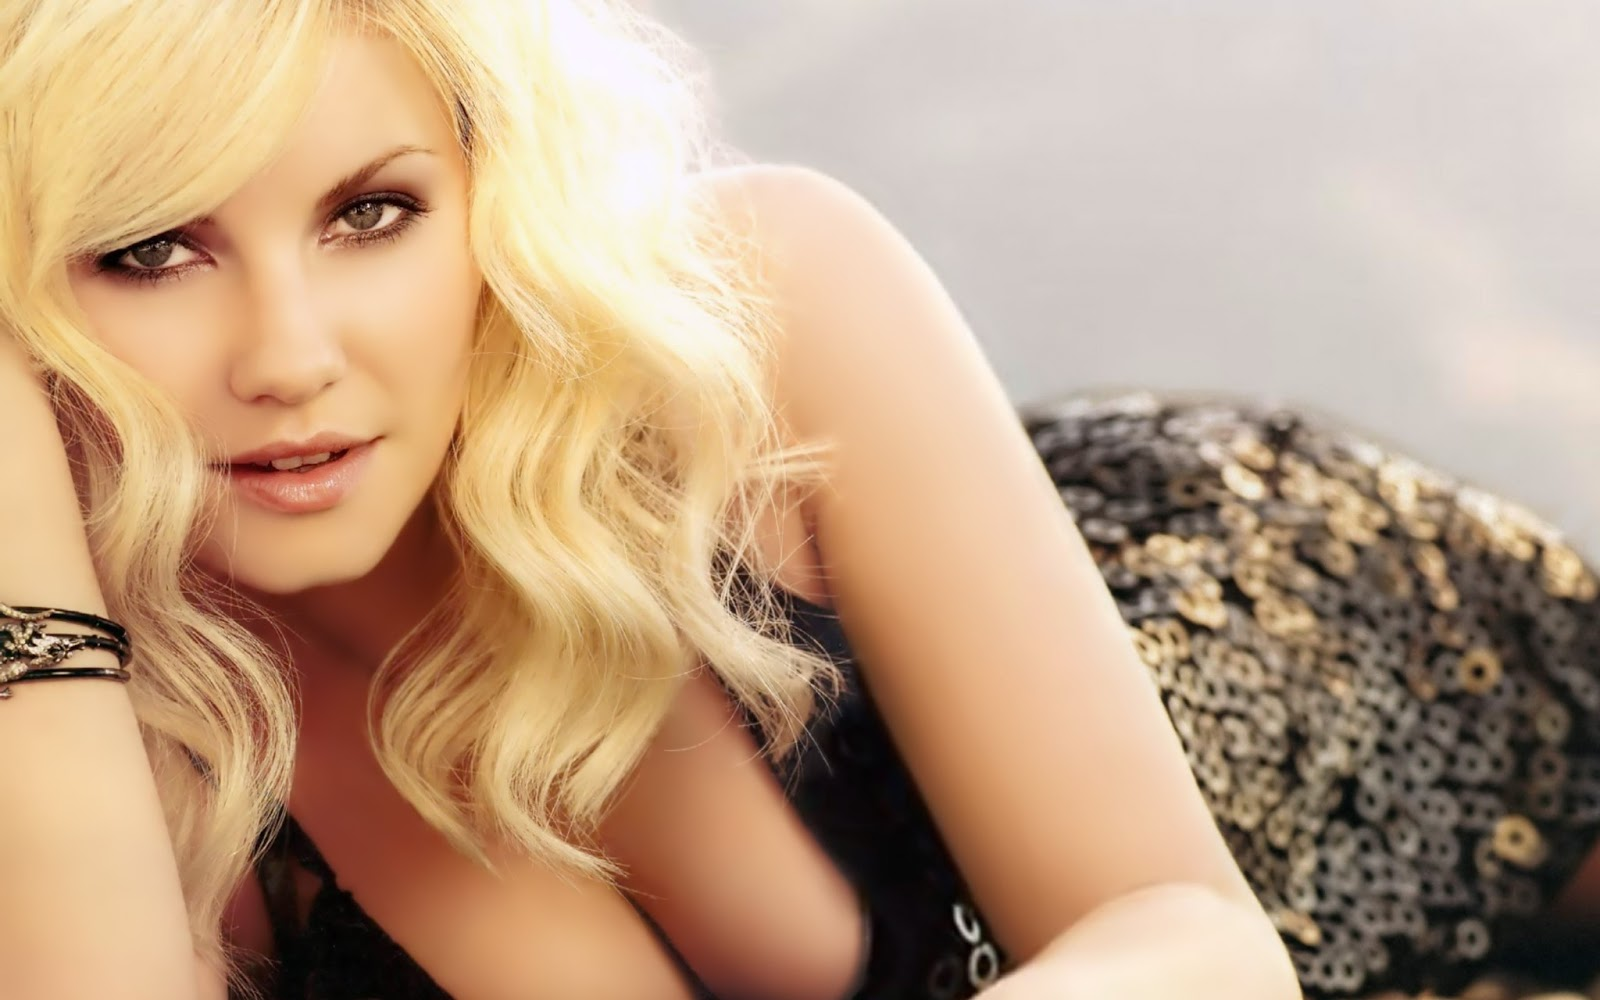 elisha cuthbert wallpapers hd - wallpapersafari